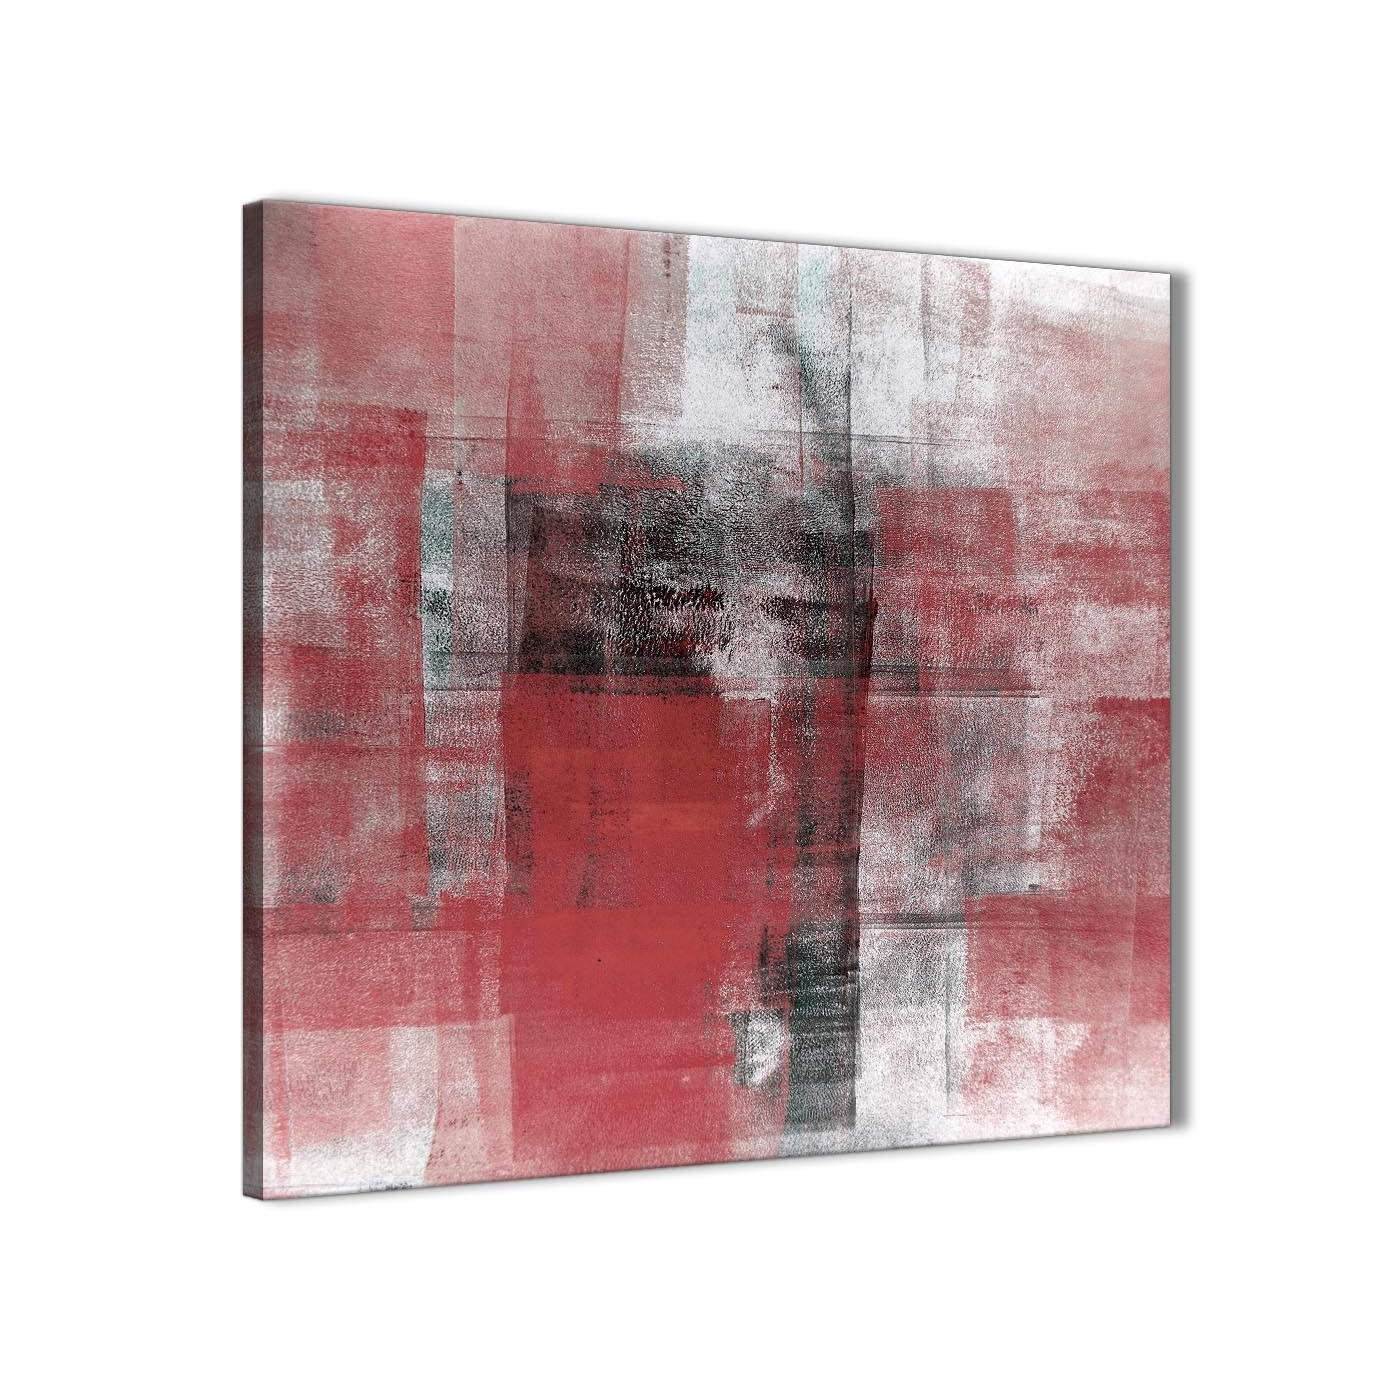 Red Black White Painting Stairway Canvas Pictures Decorations With Regard To Most Popular Kitchen Canvas Wall Art Decors (Gallery 20 of 20)